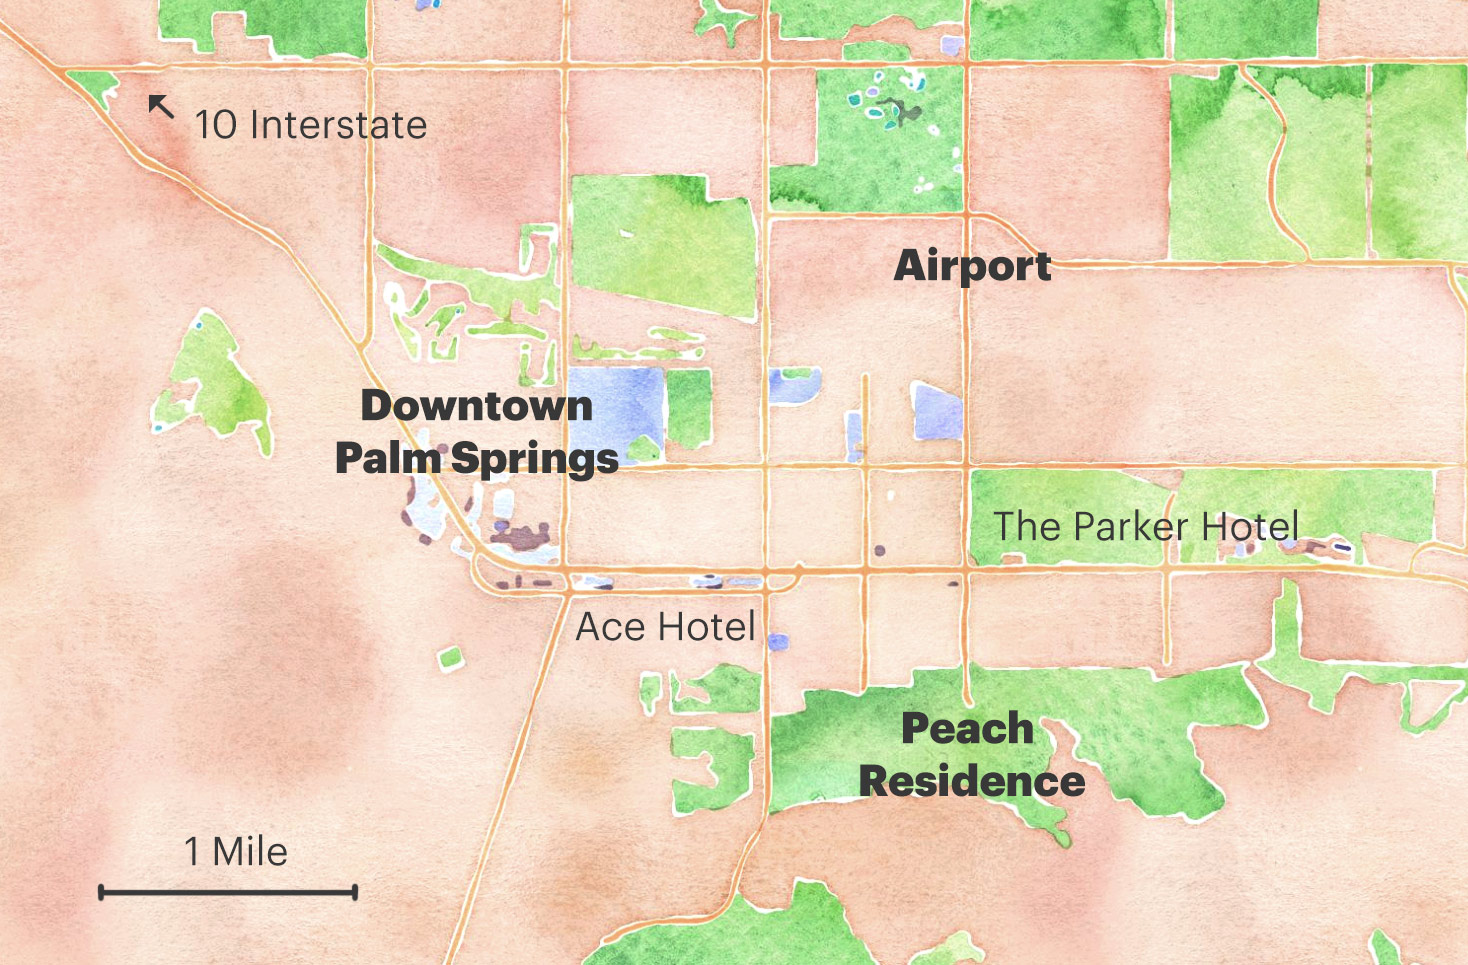 The Peach Residence in Palm Springs